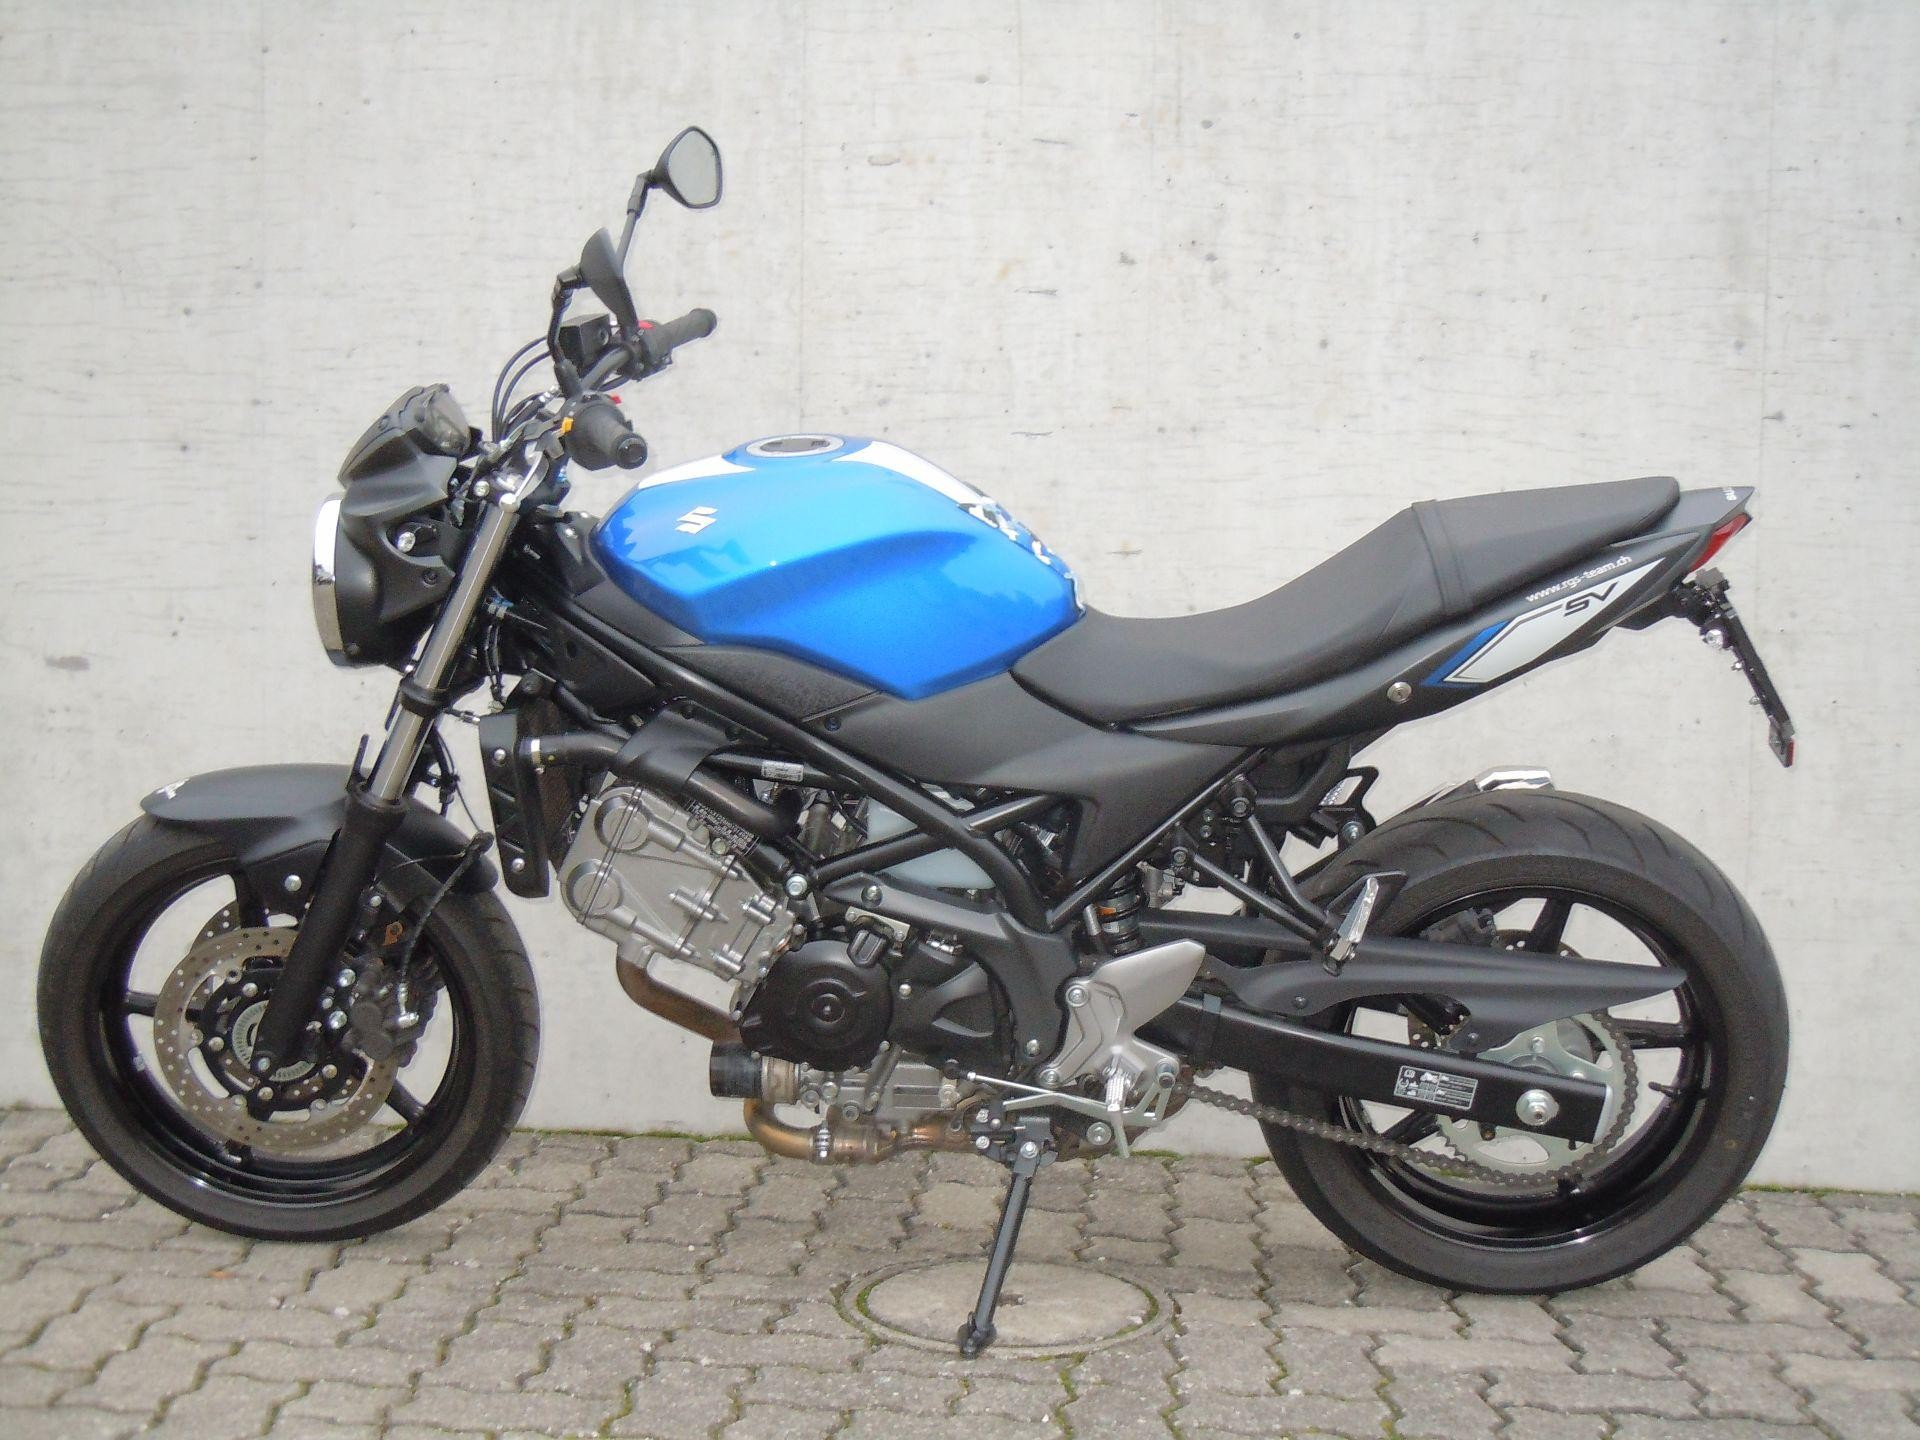 suzuki sv 650 a abs mit zubeh r rolf gall superbikes ag b tzberg occasion. Black Bedroom Furniture Sets. Home Design Ideas